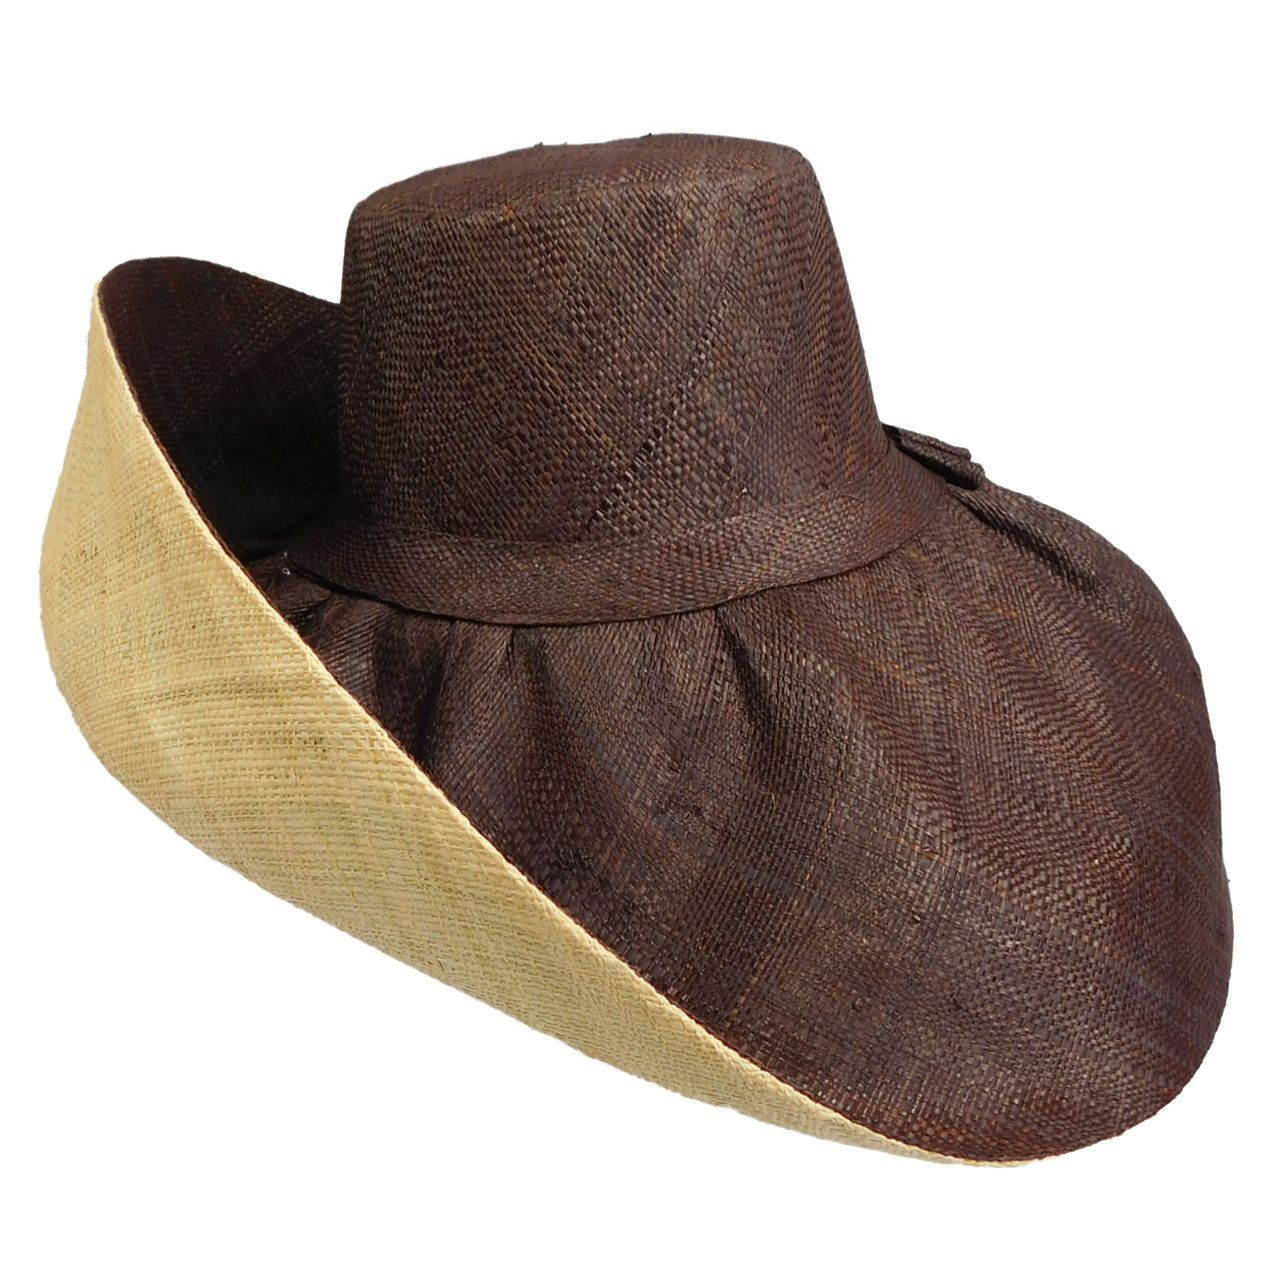 4561273e6e91b6 Madagascar Raffia Extra Wide Brim Beach Hat | Ladies Summer Hats ...